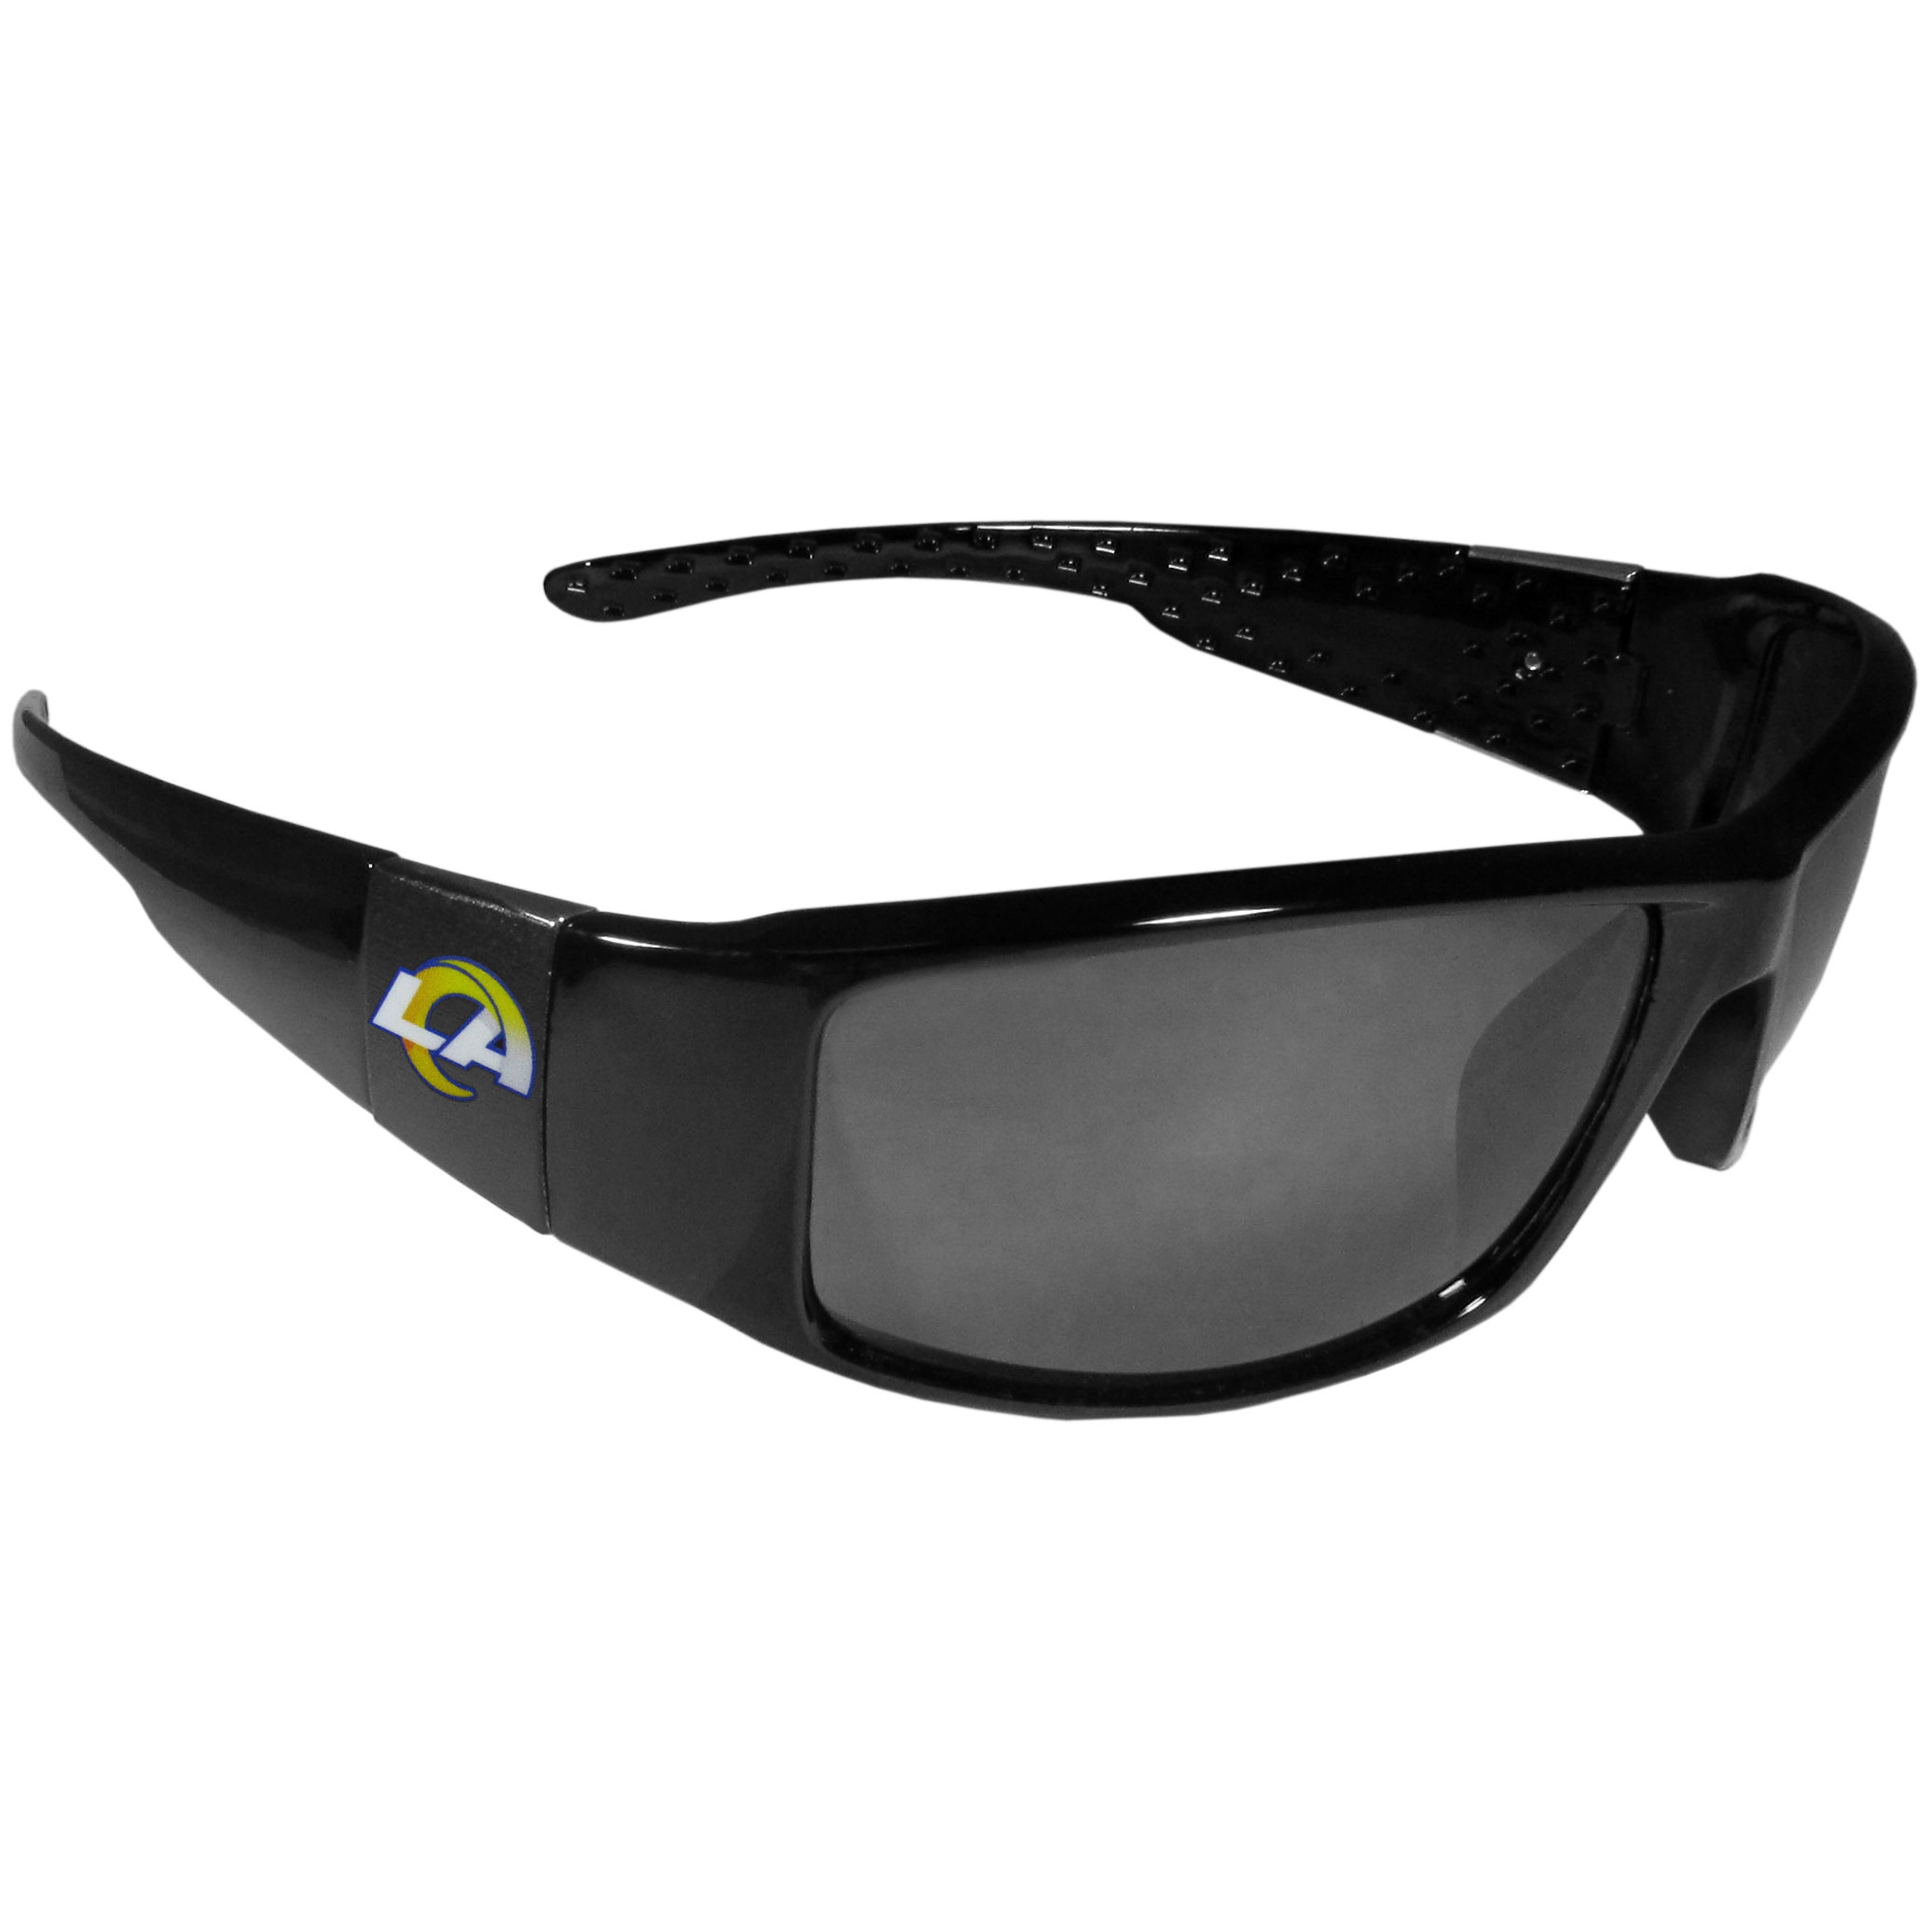 Los Angeles Rams Black Wrap Sunglasses - These designer inspired frames have a sleek look in all black with  Los Angeles Rams shields on each arm with a printed logo. The shades are perfect for any outdoor activity like; golfing, driving, hiking, fishing or cheering on the team at a tailgating event or at a home game day BBQ with a lens rating of 100% UVA/UVB for maximum UV protection. The high-quality frames are as durable as they are fashionable and with their classic look they are the perfect fan accessory that can be worn everyday for every occasion.